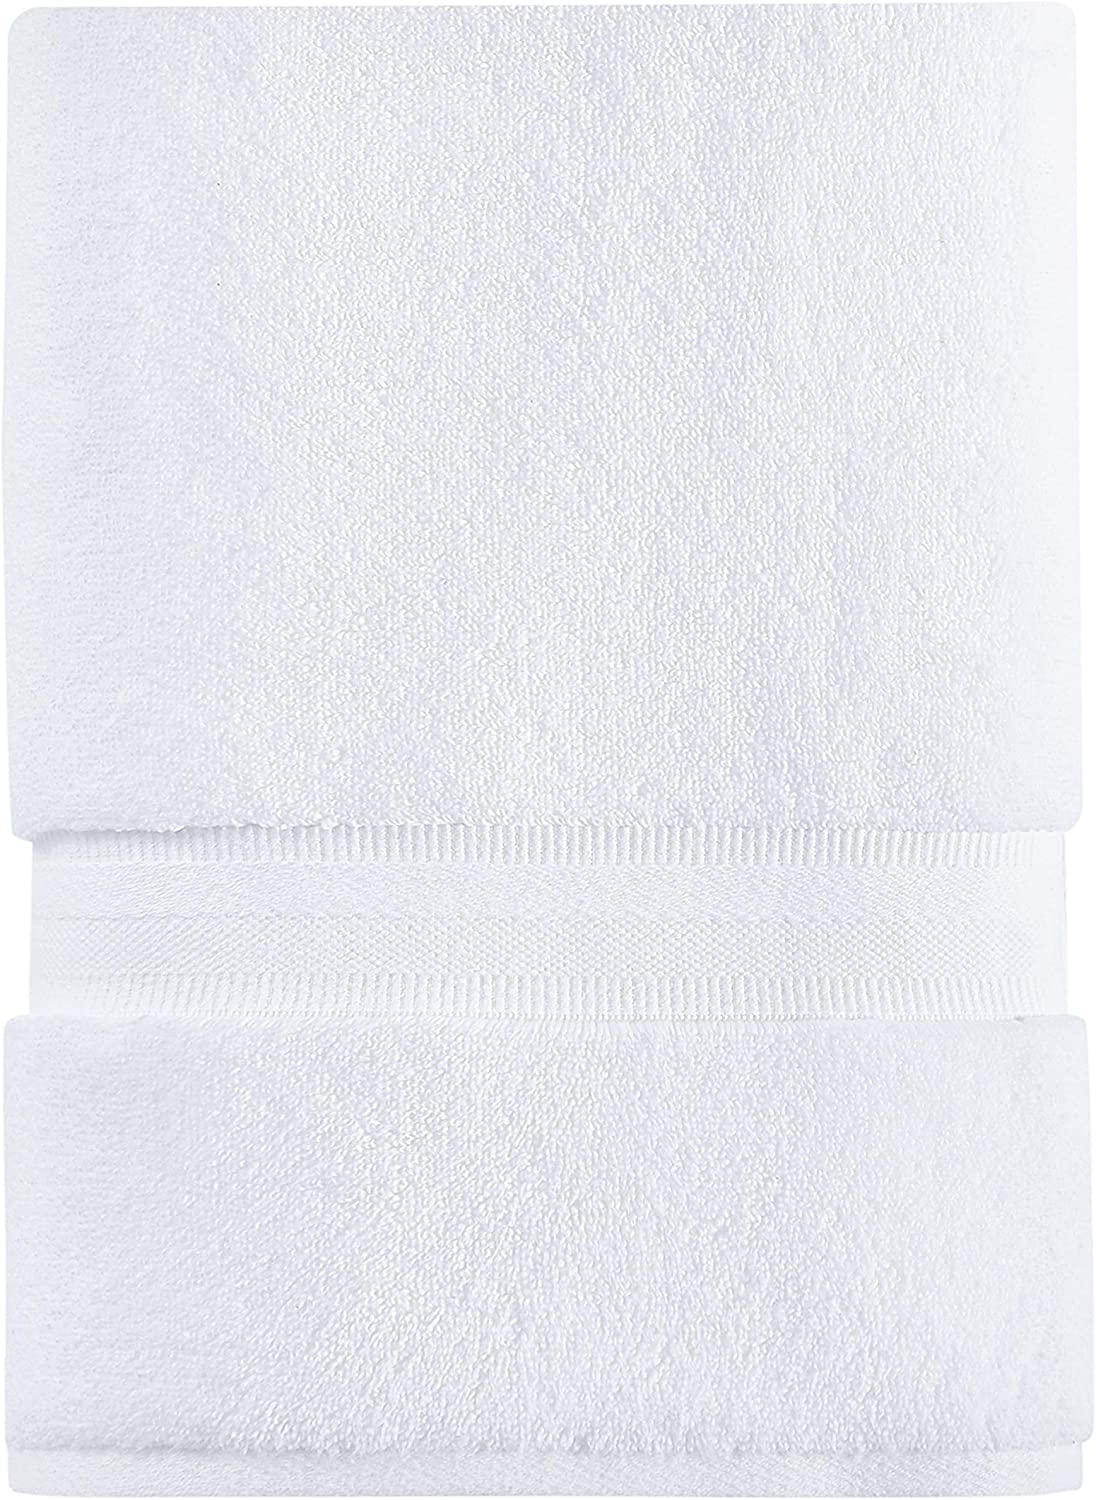 Tommy Hilfiger Homegrown Essential 55% OFF Towel White Clearance SALE Limited time Bath